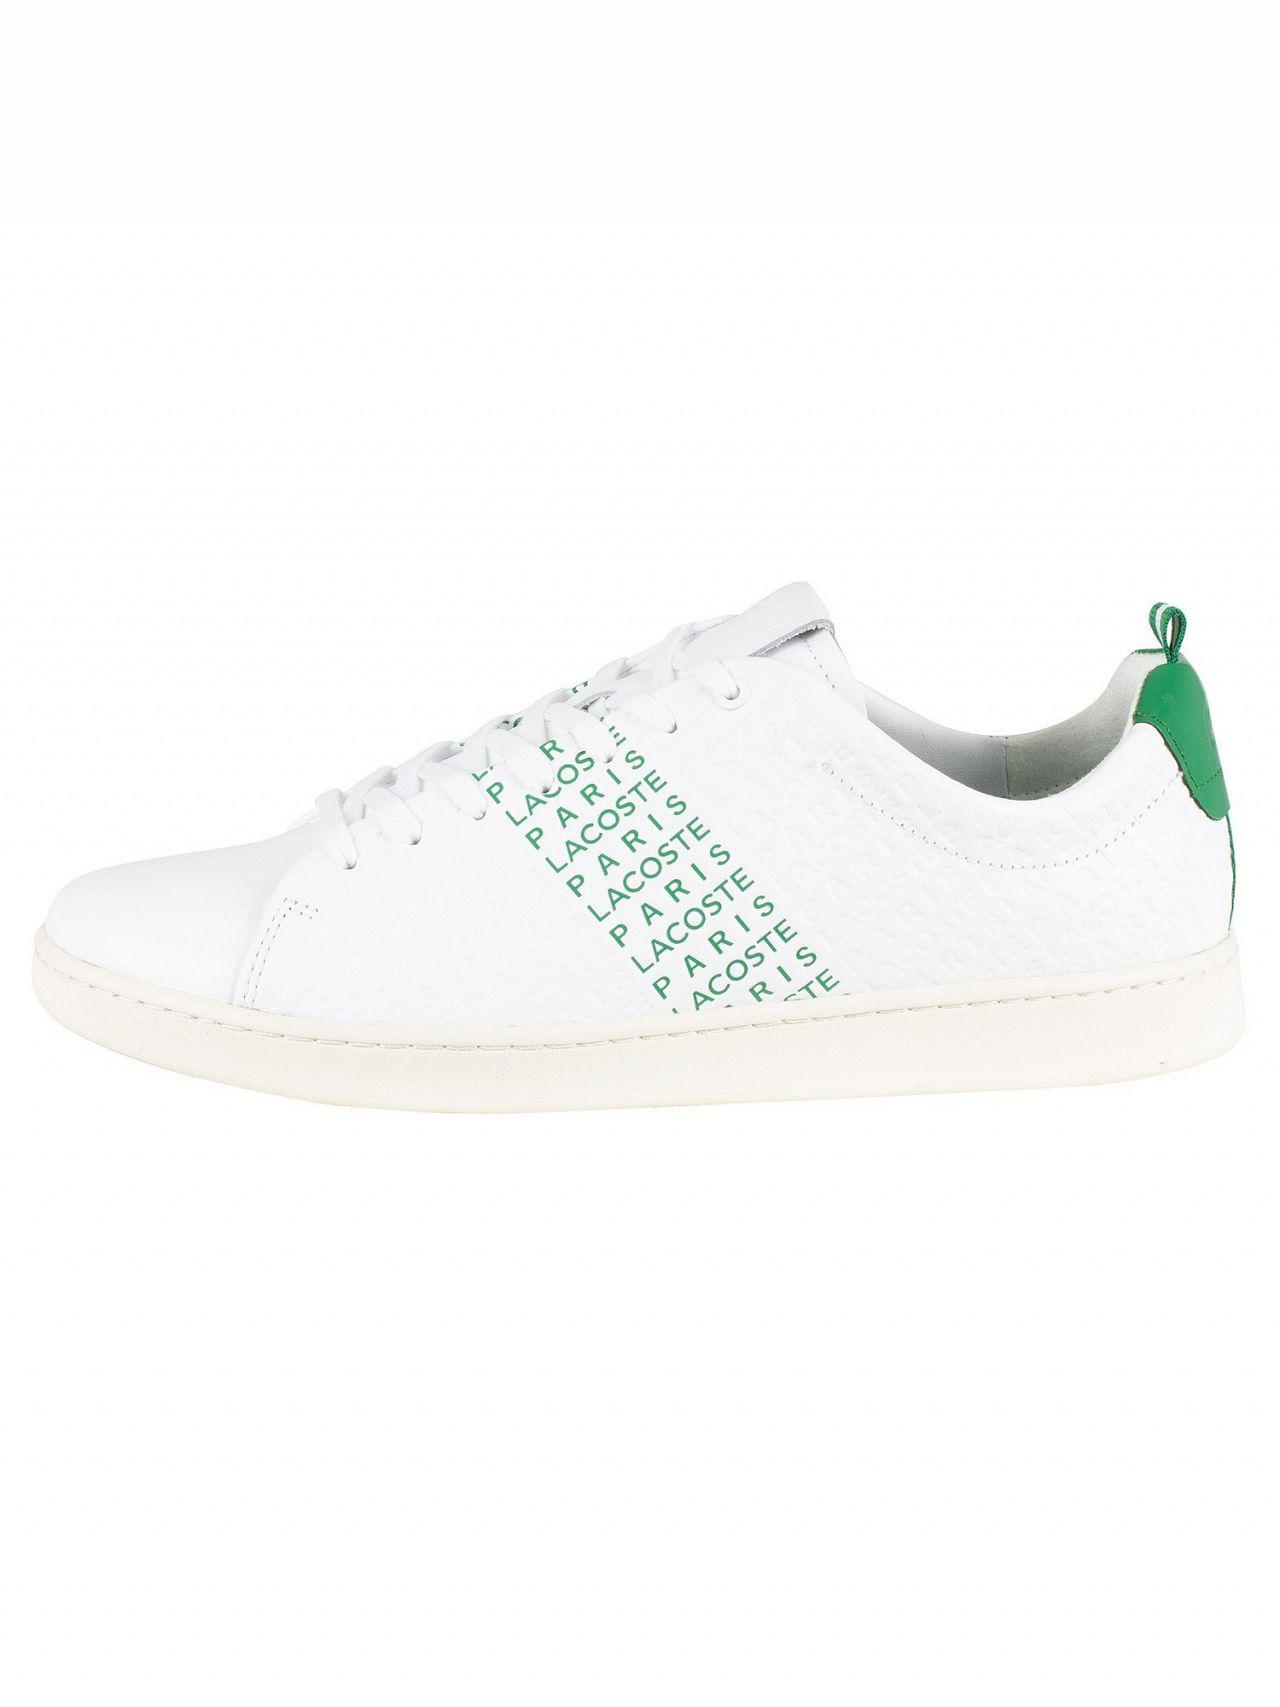 6b0e6a99d Lyst - Lacoste White green Carnaby Evo 119 9 Leather Trainers in White for  Men